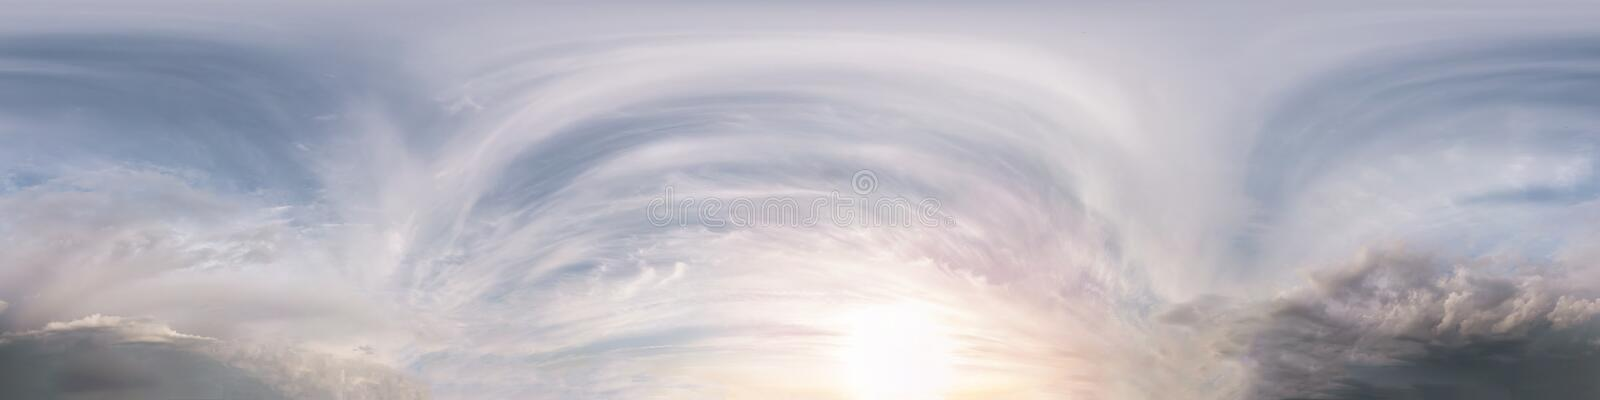 Seamless dark sky after sunset hdri panorama 360 degrees angle view with beautiful clouds  with zenith for use in 3d graphics or. Game development as sky dome stock photo